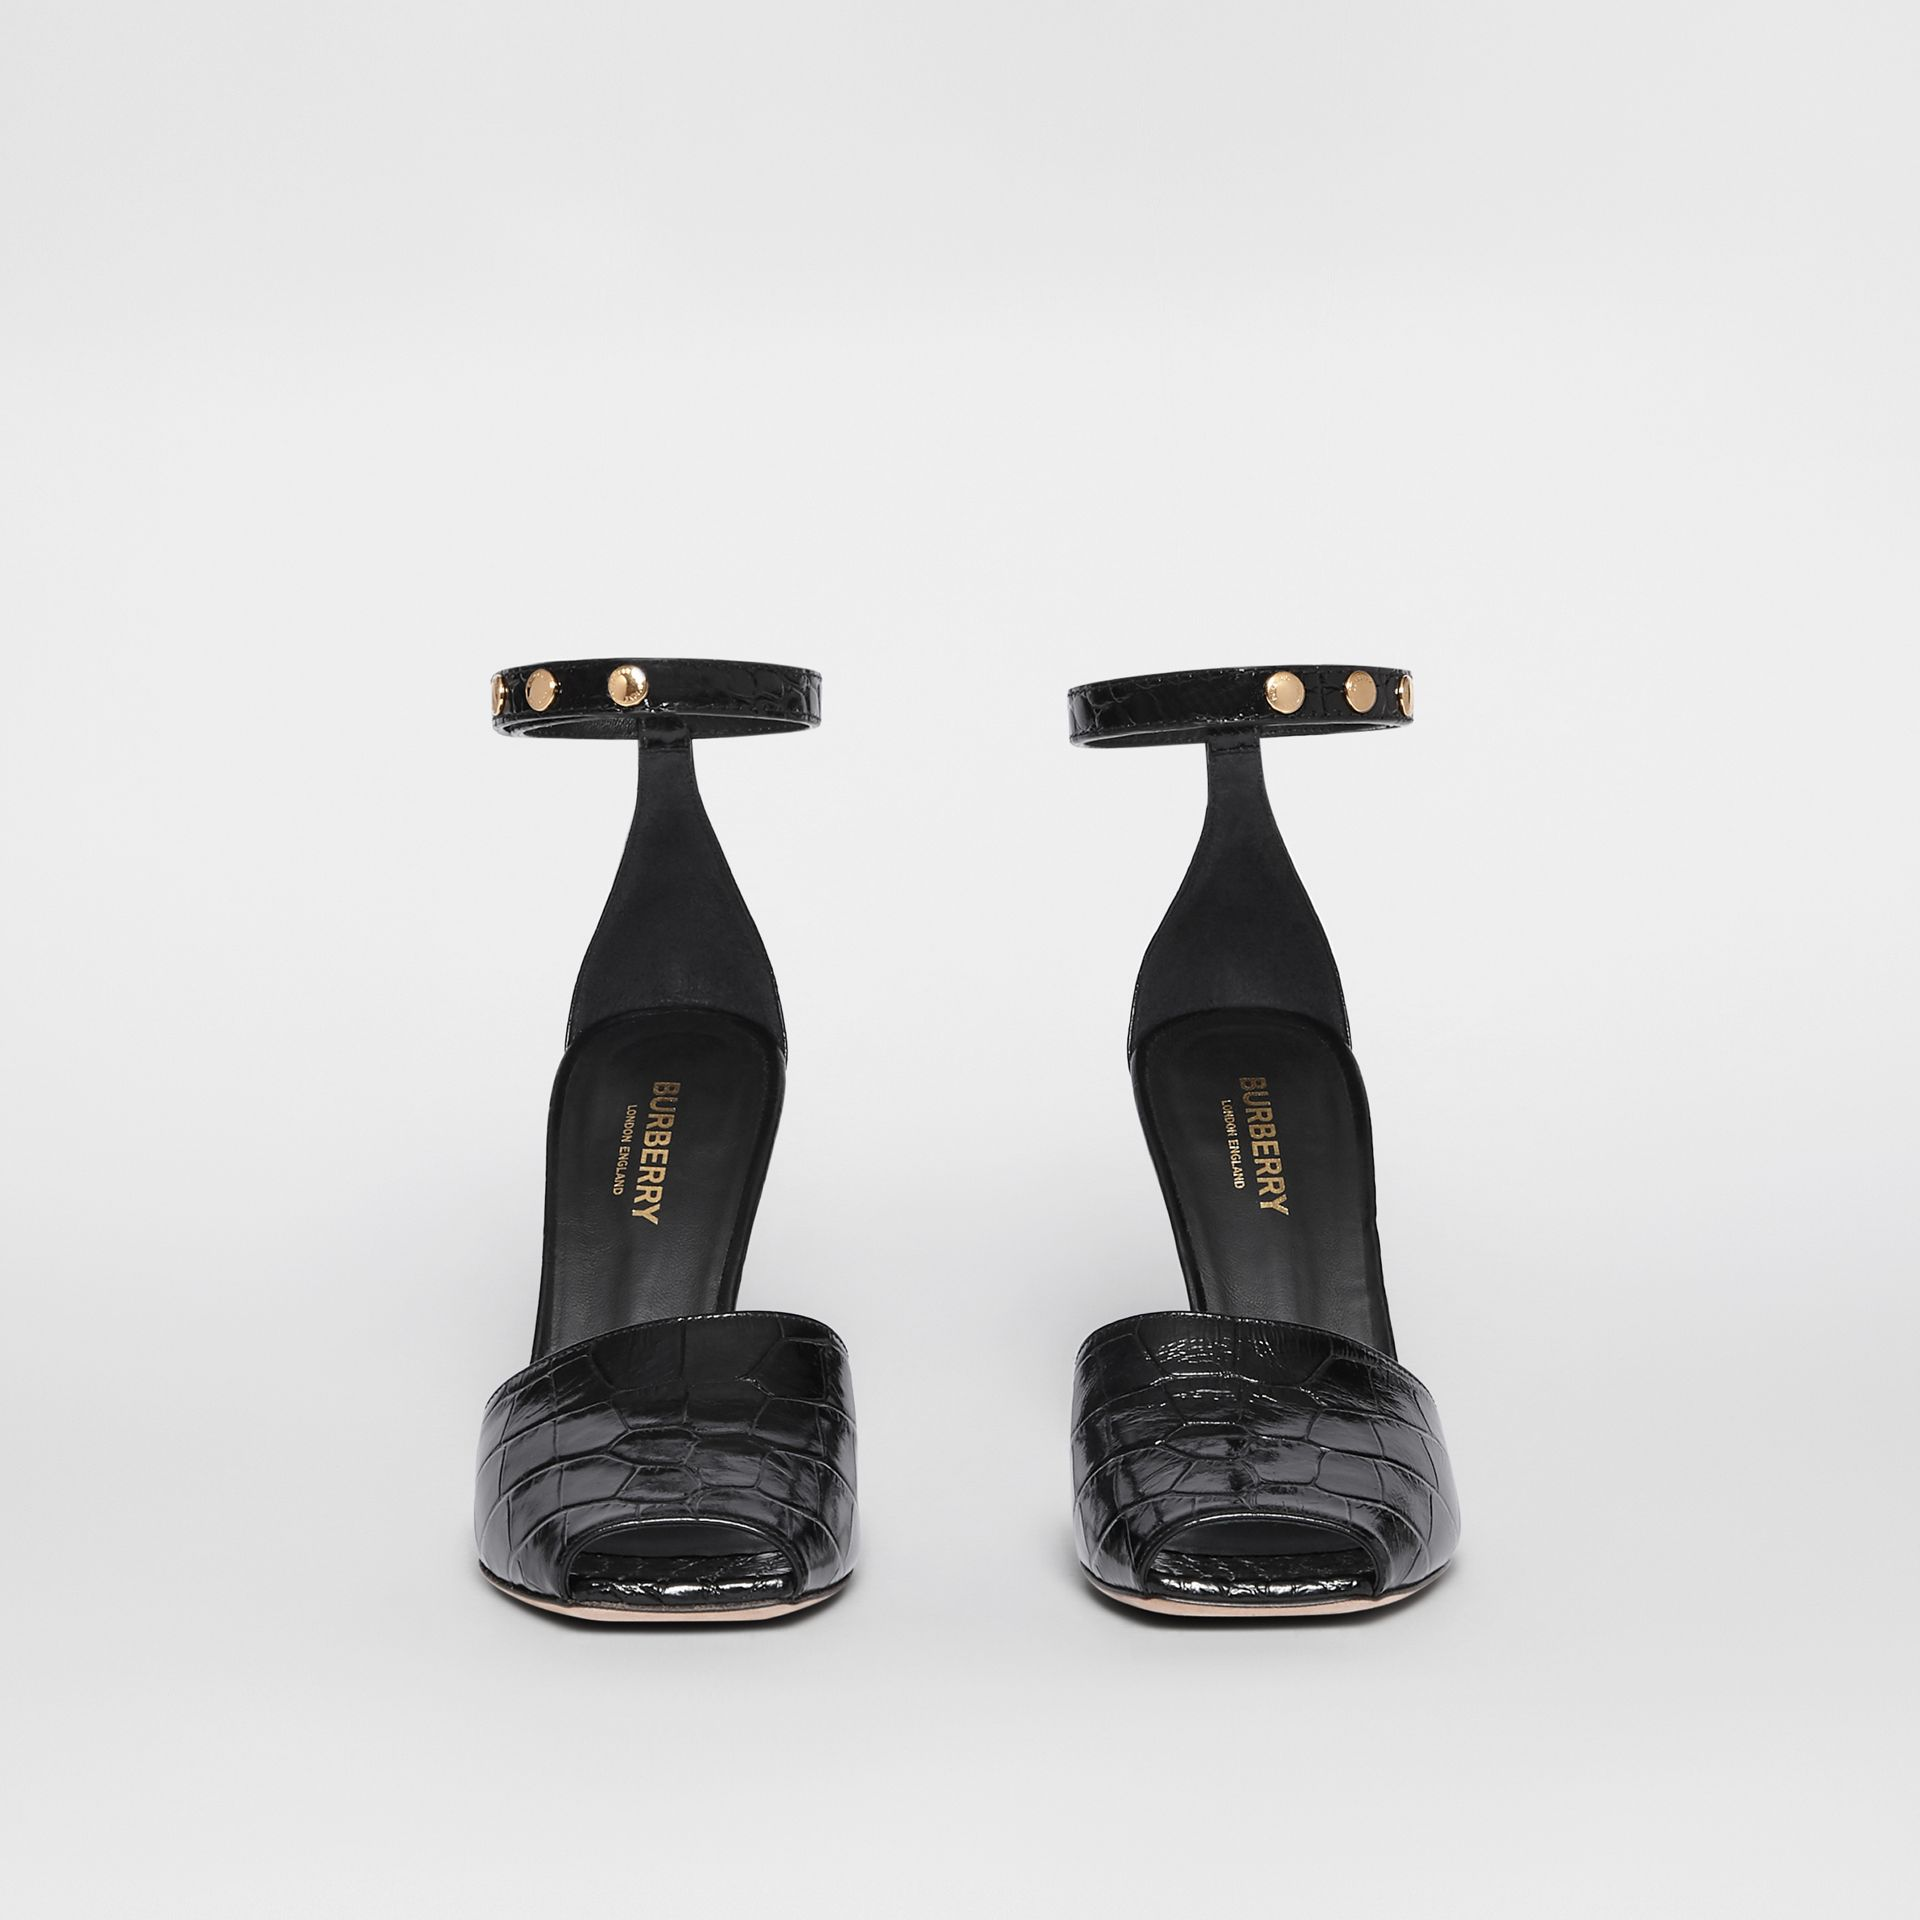 Triple Stud Embossed Leather Peep-toe Sandals in Black - Women | Burberry - gallery image 3